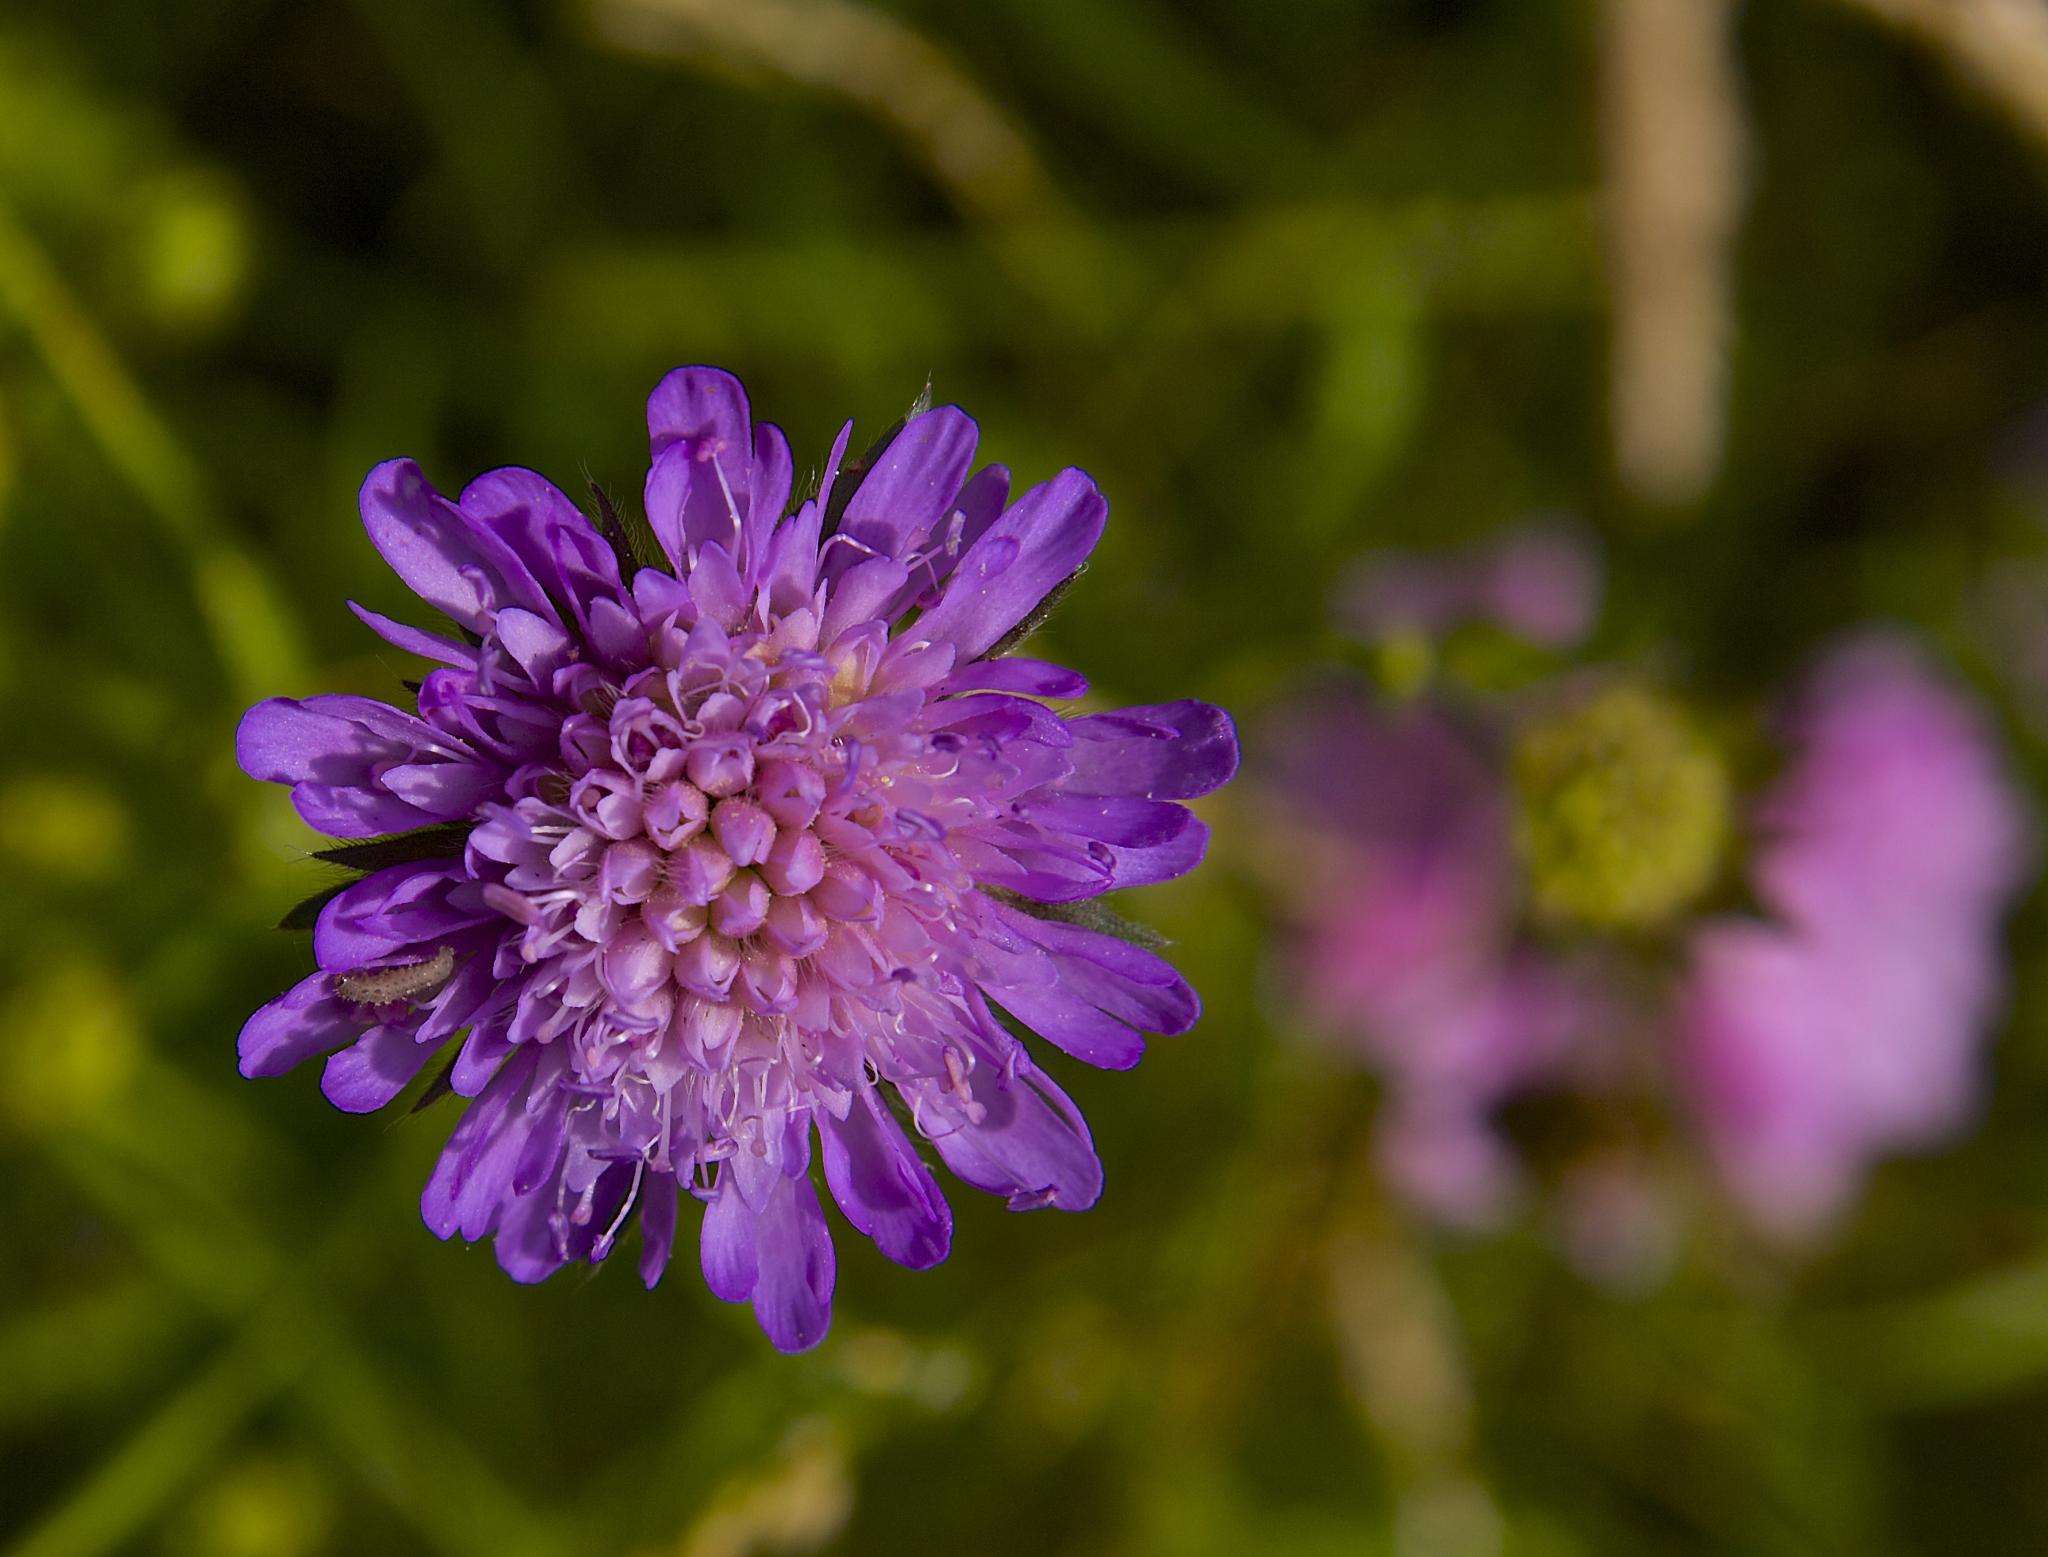 Flower with a caterpillar by Azucena Kouwenhoven